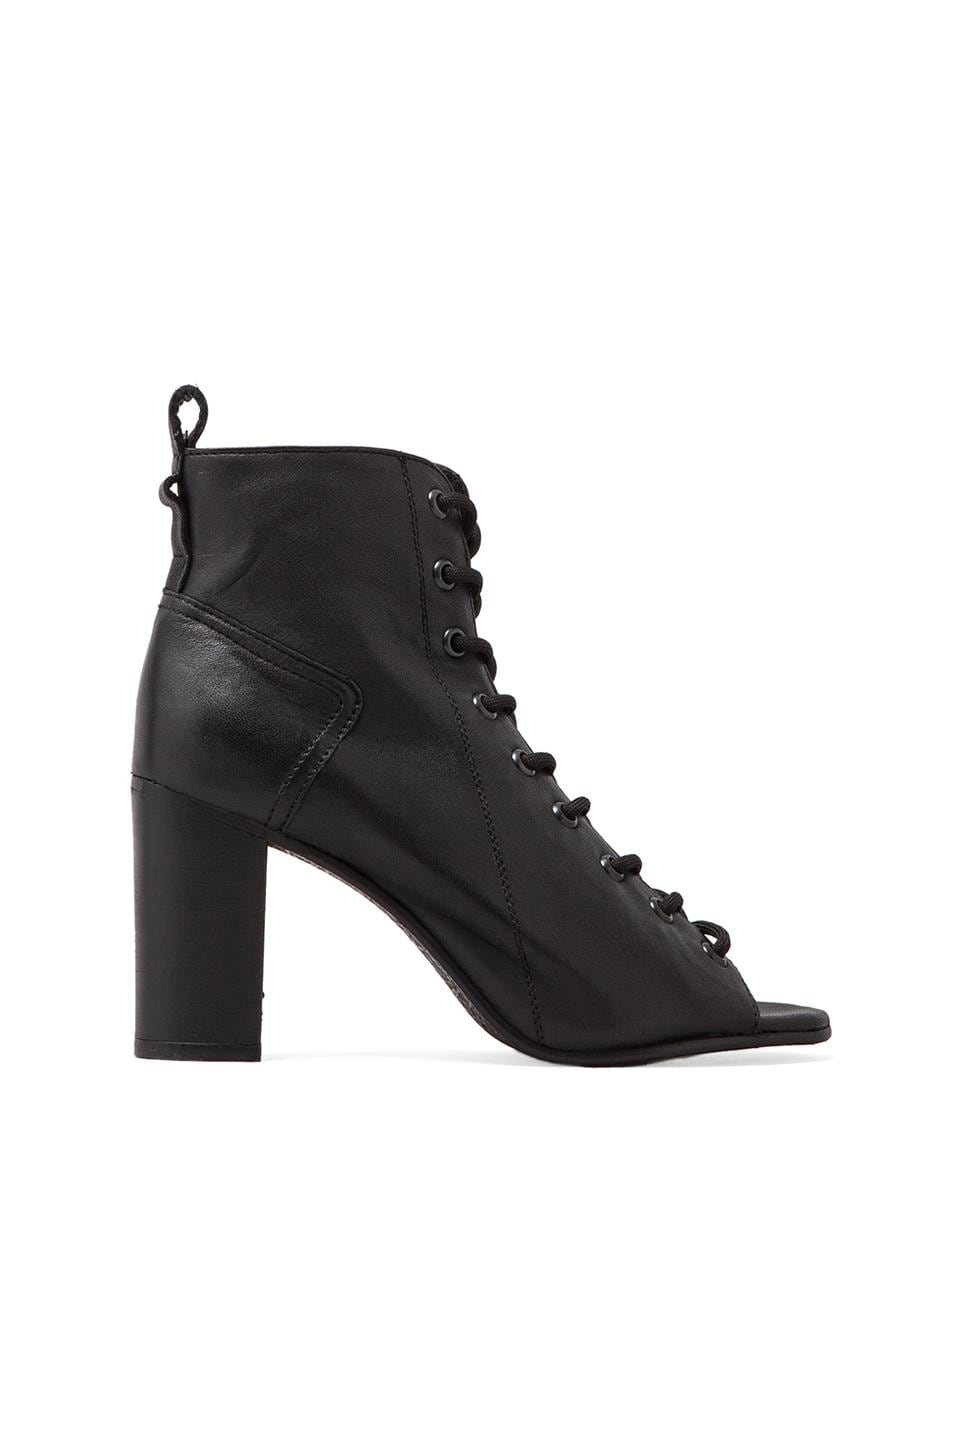 Steve Madden Scandlus Boot in Black Leather